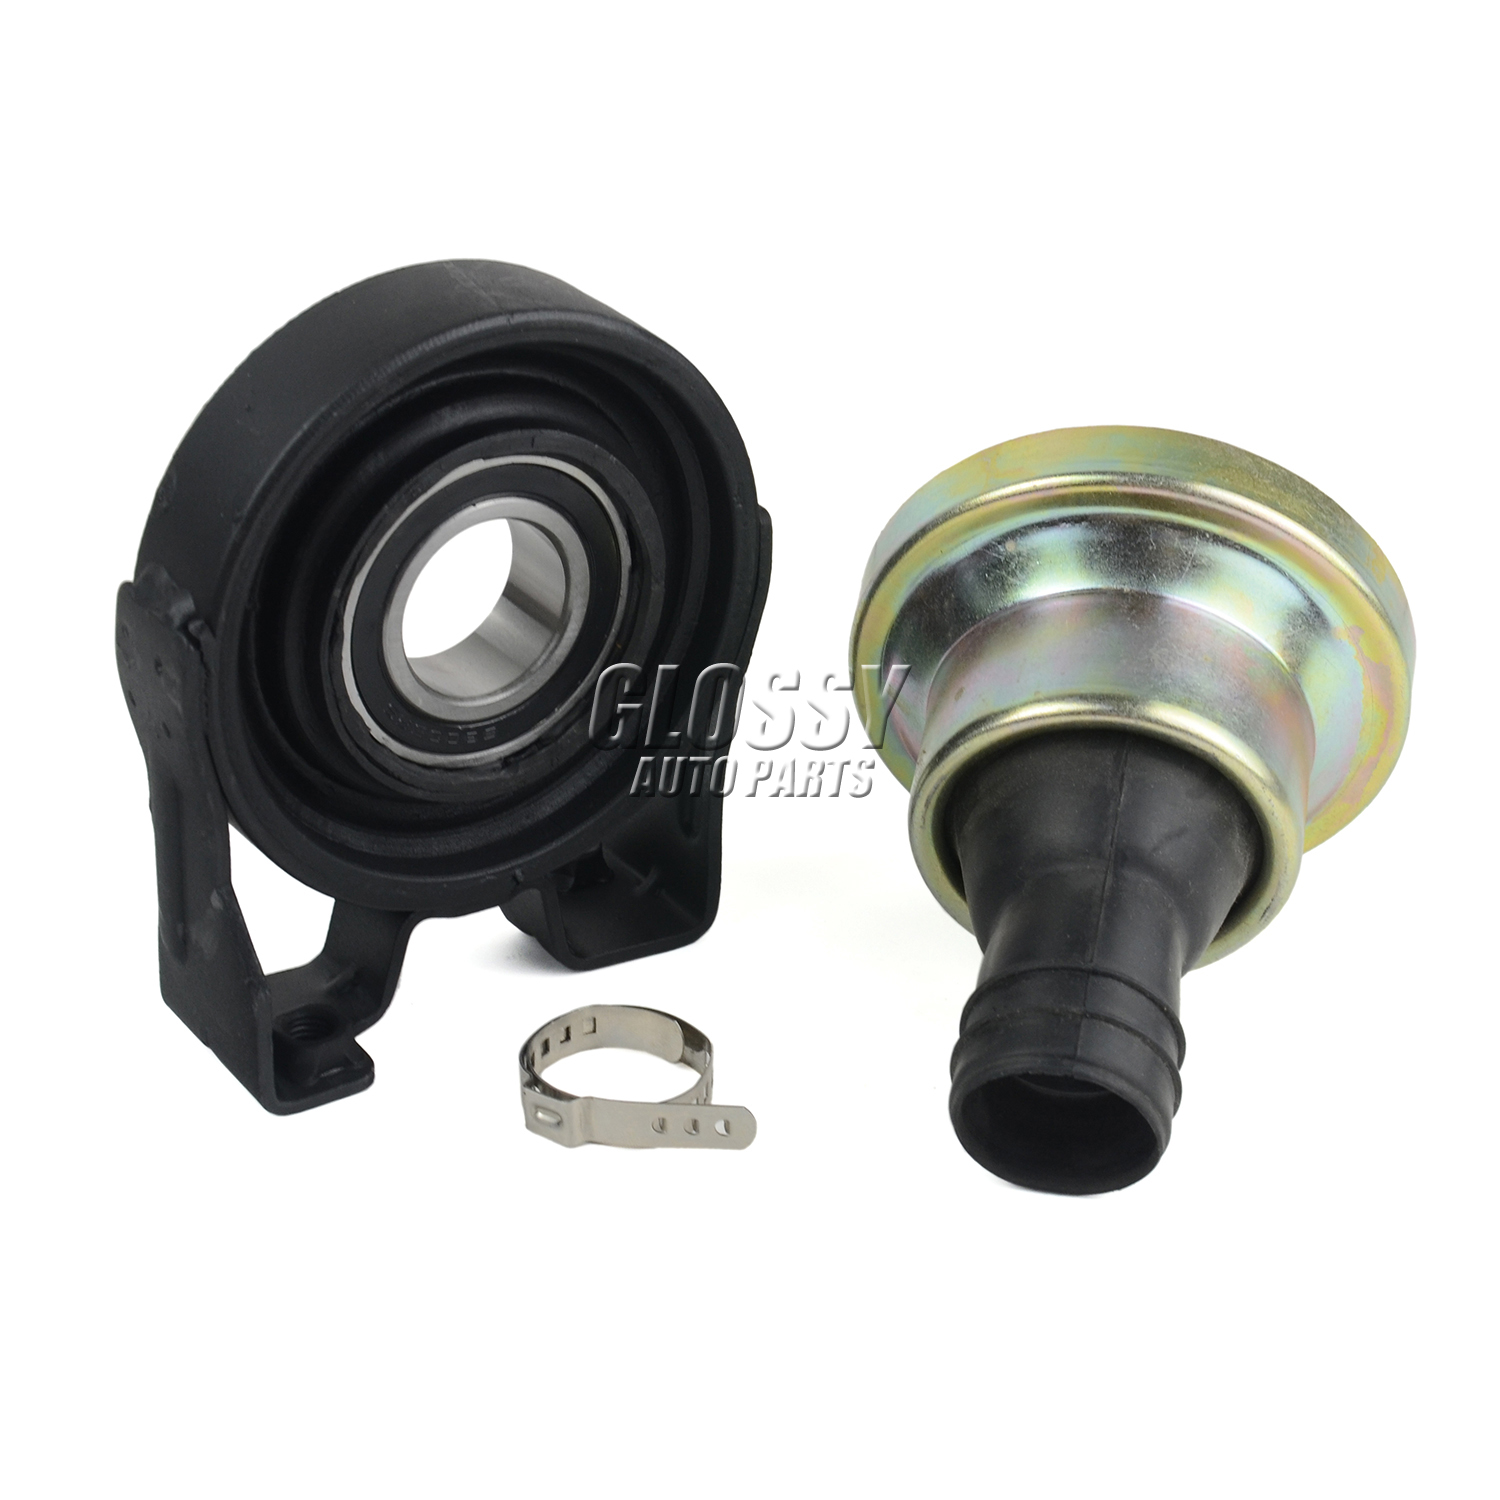 PROPSHAFT CENTRE BEARING REPLACEMENT KIT VW TOUAREG PORSCHE CAYENNE AUDI Q7